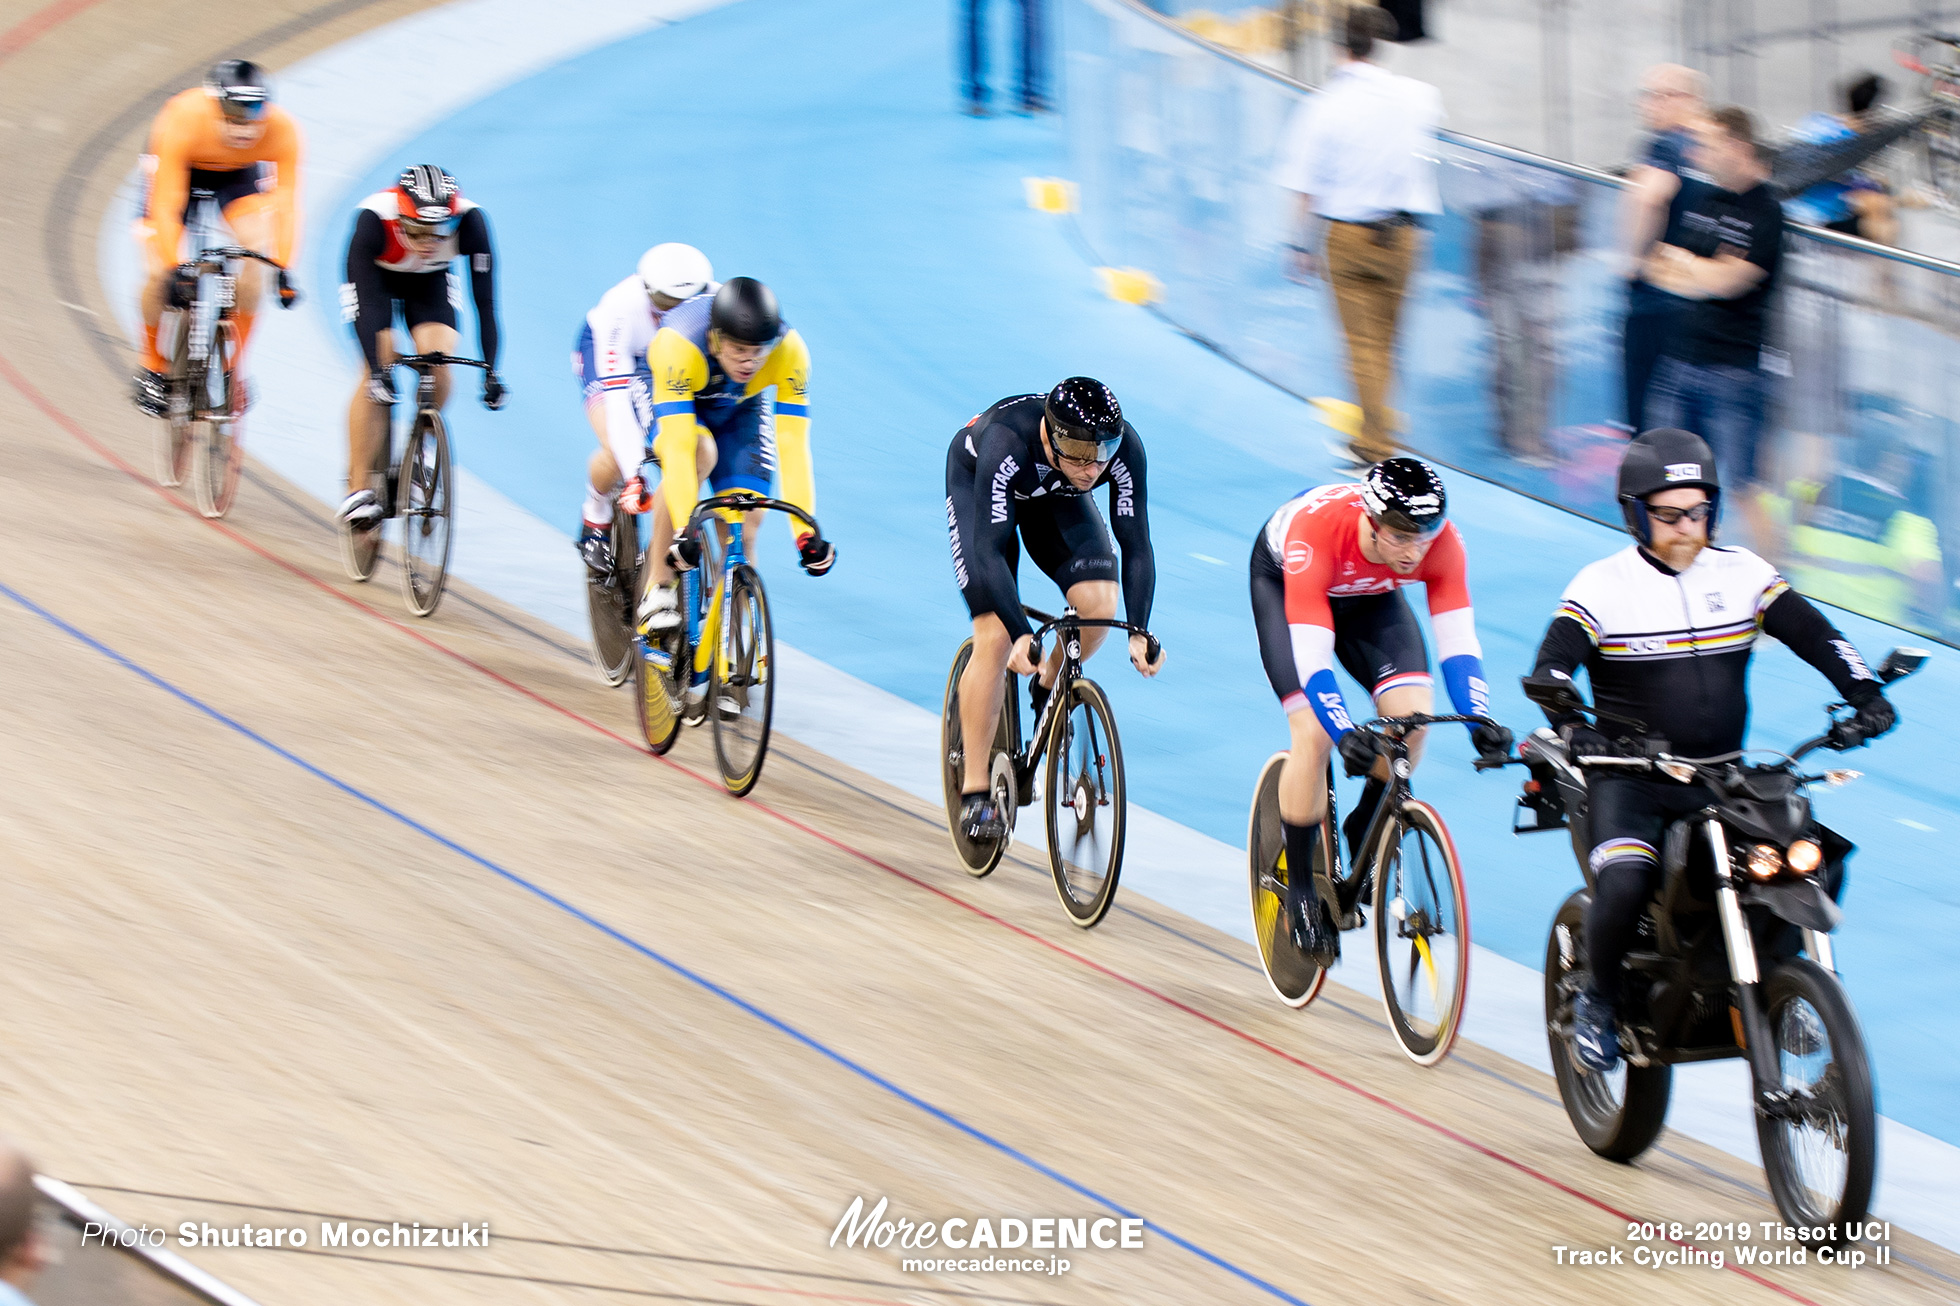 2018-2019 Tissot UCI Track Cycling World Cup II Men's Keirin Second Round